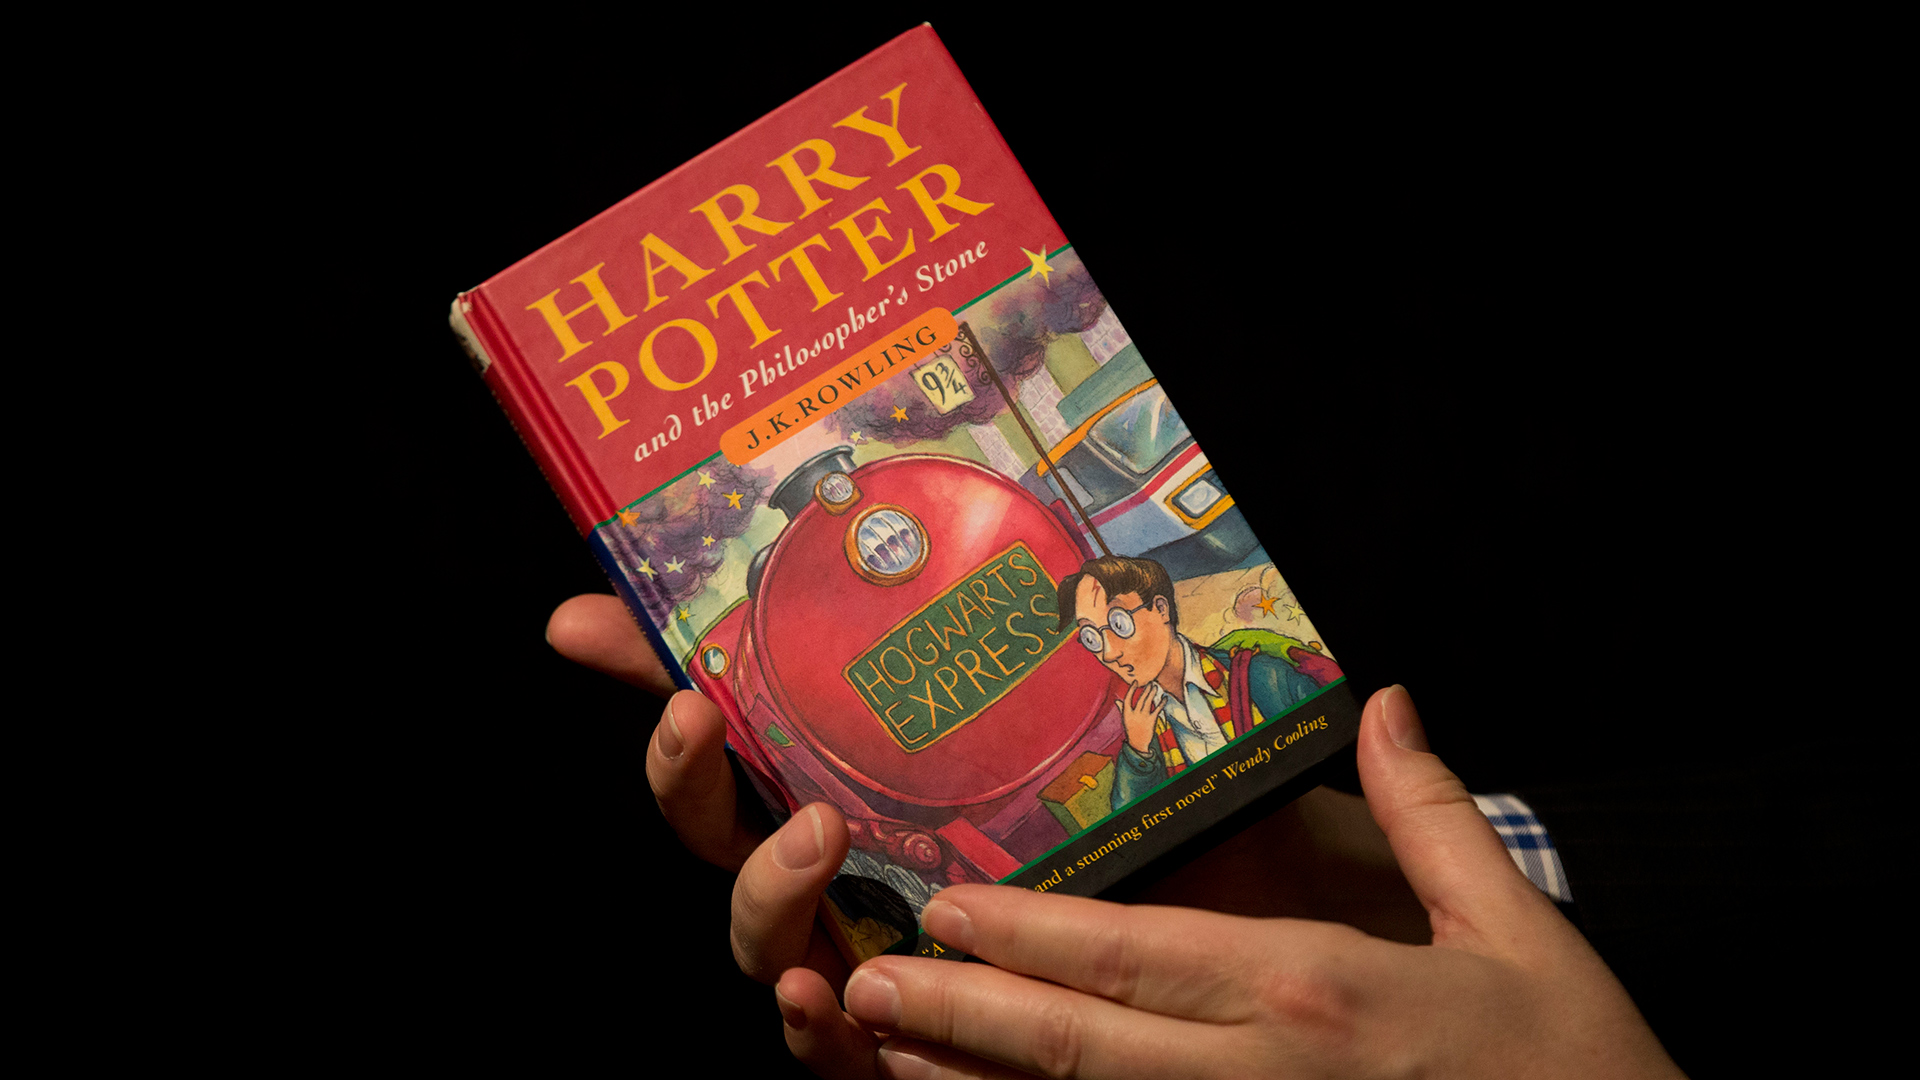 harypotter